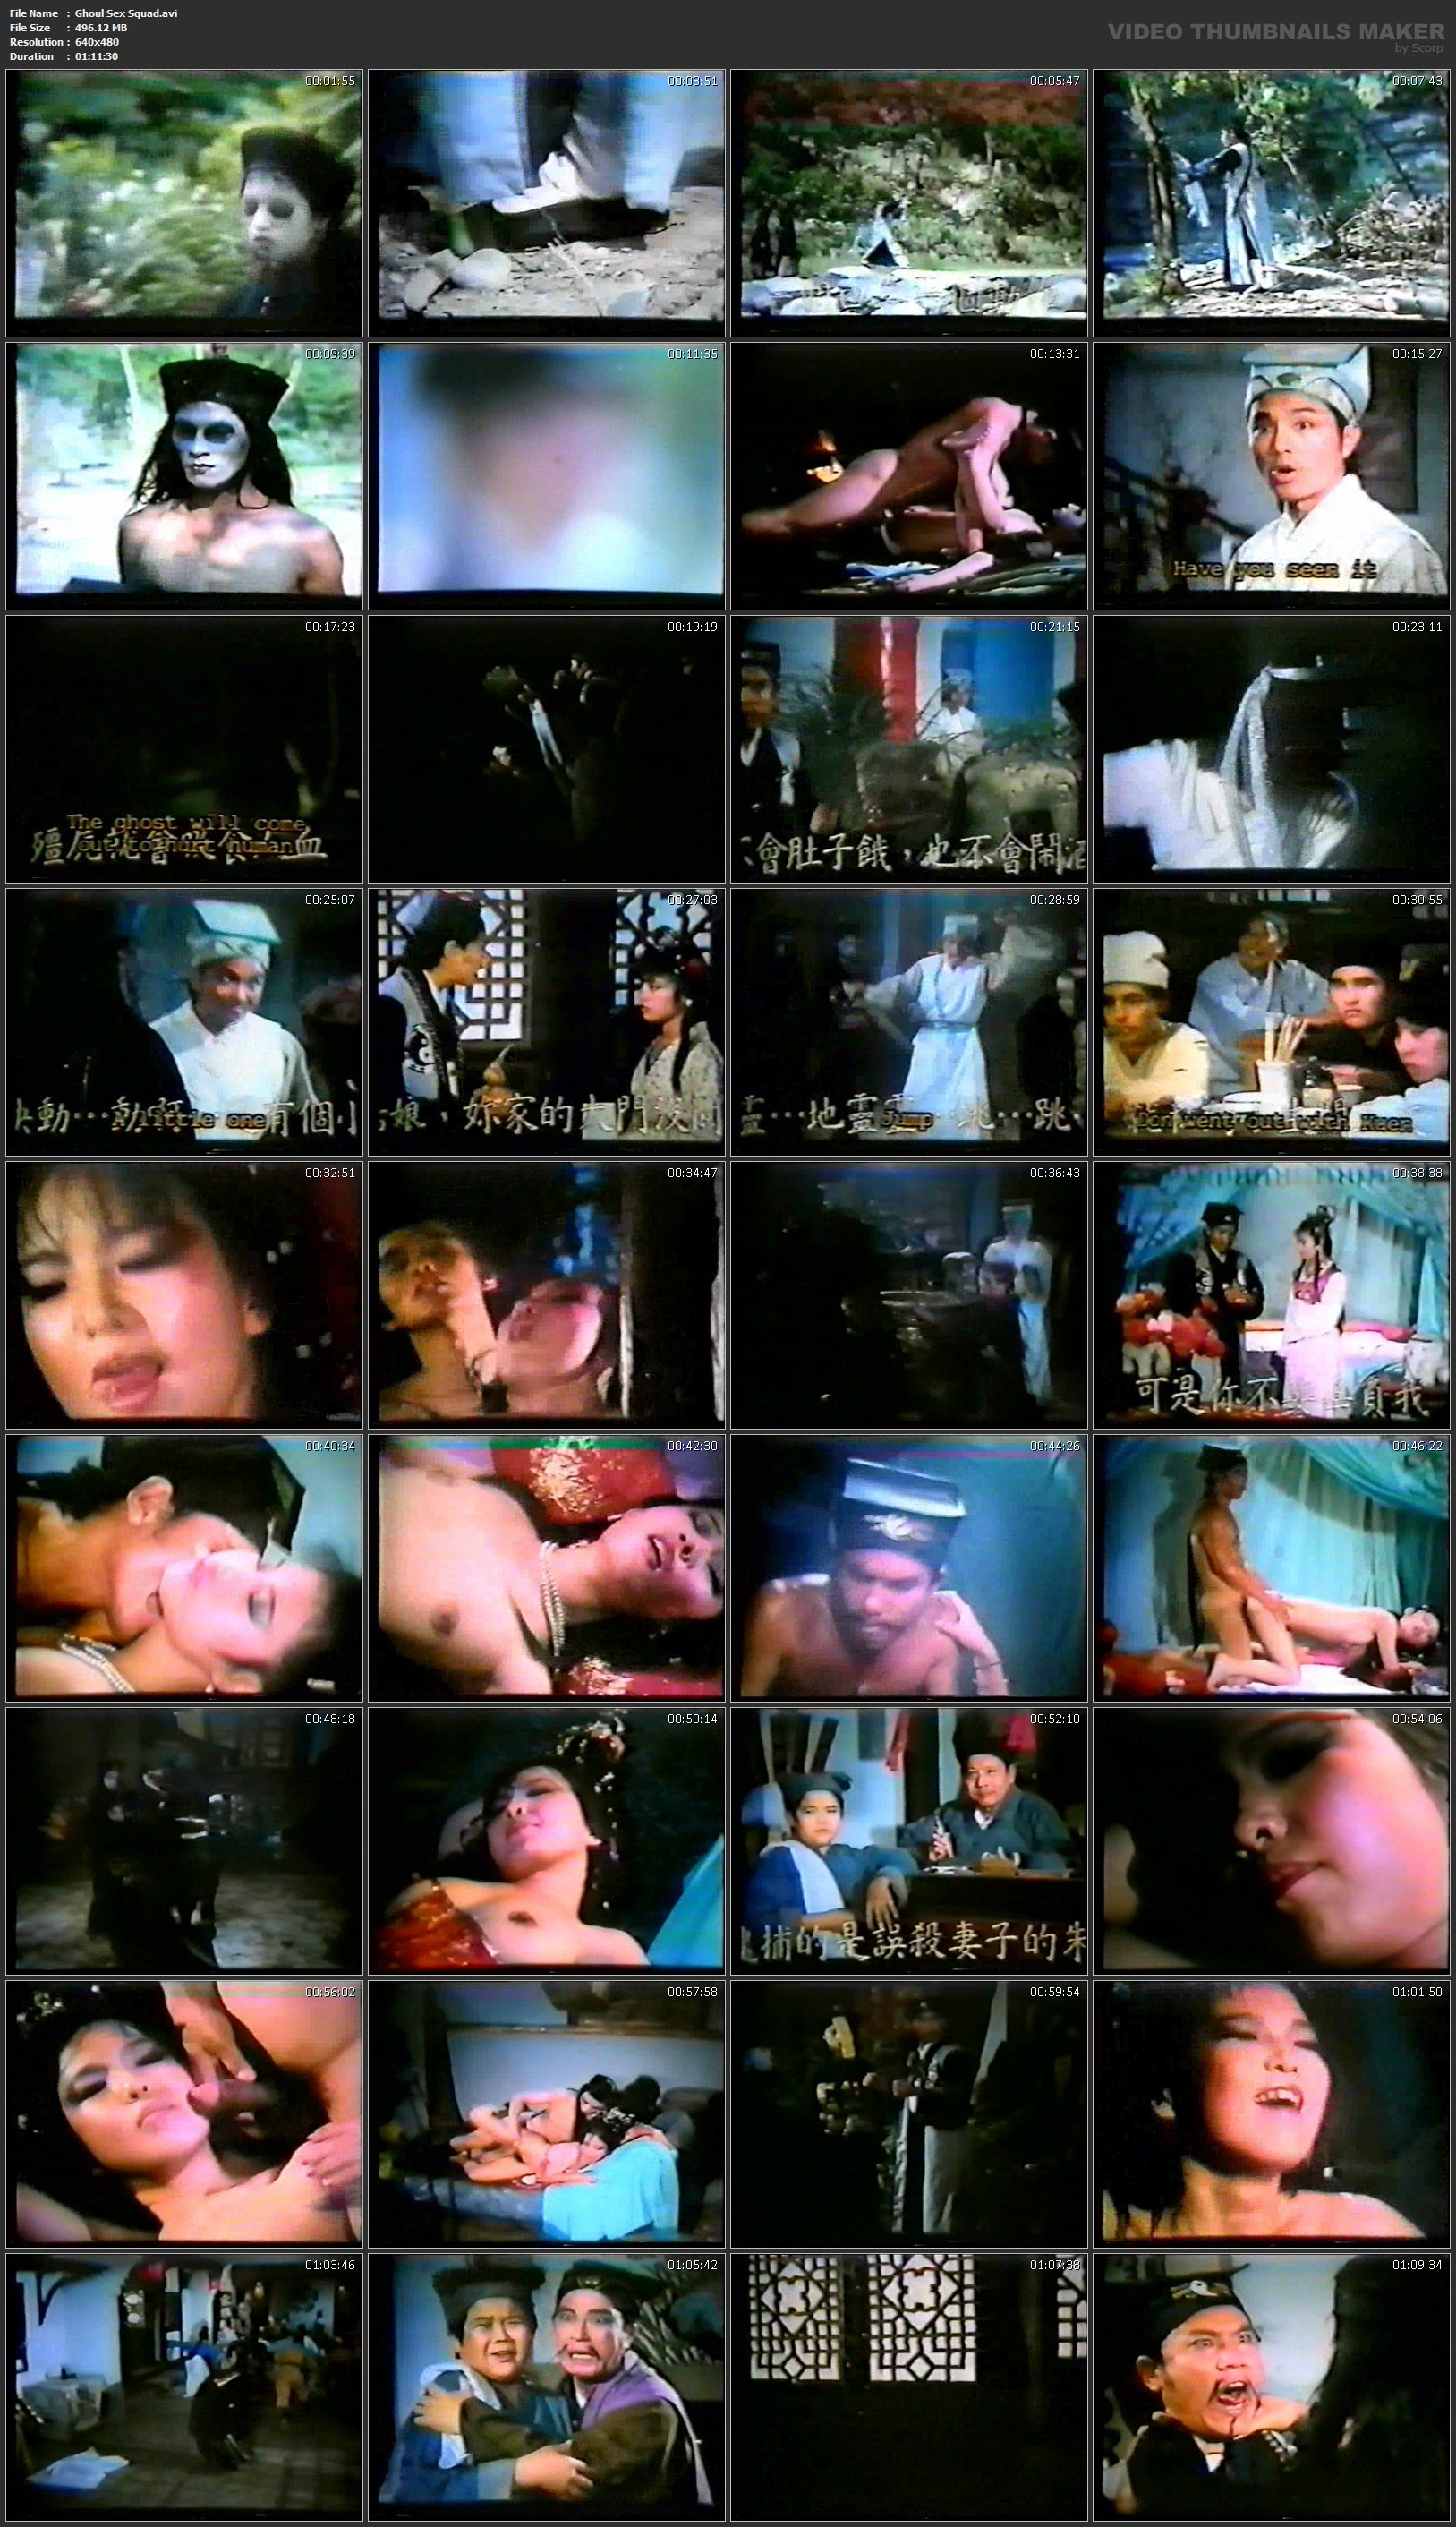 ghoul sex squad 1991 download movie